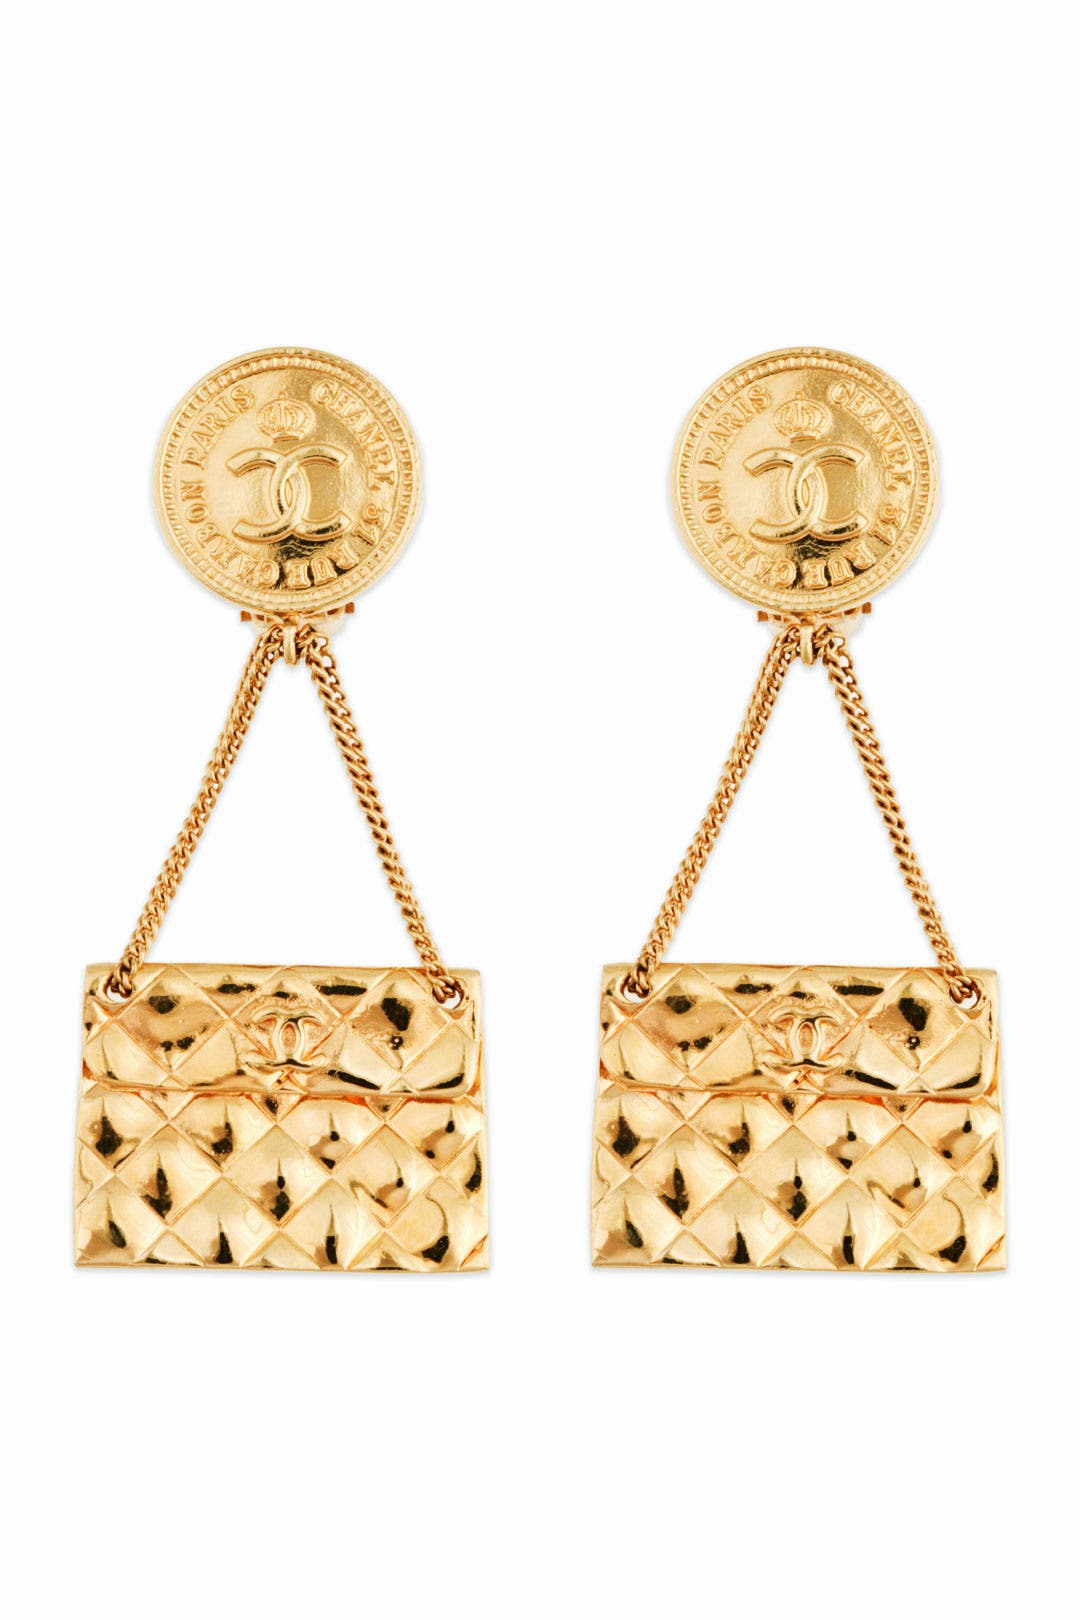 Vintage Chanel Flap Bag Earrings by WGACA Vintage